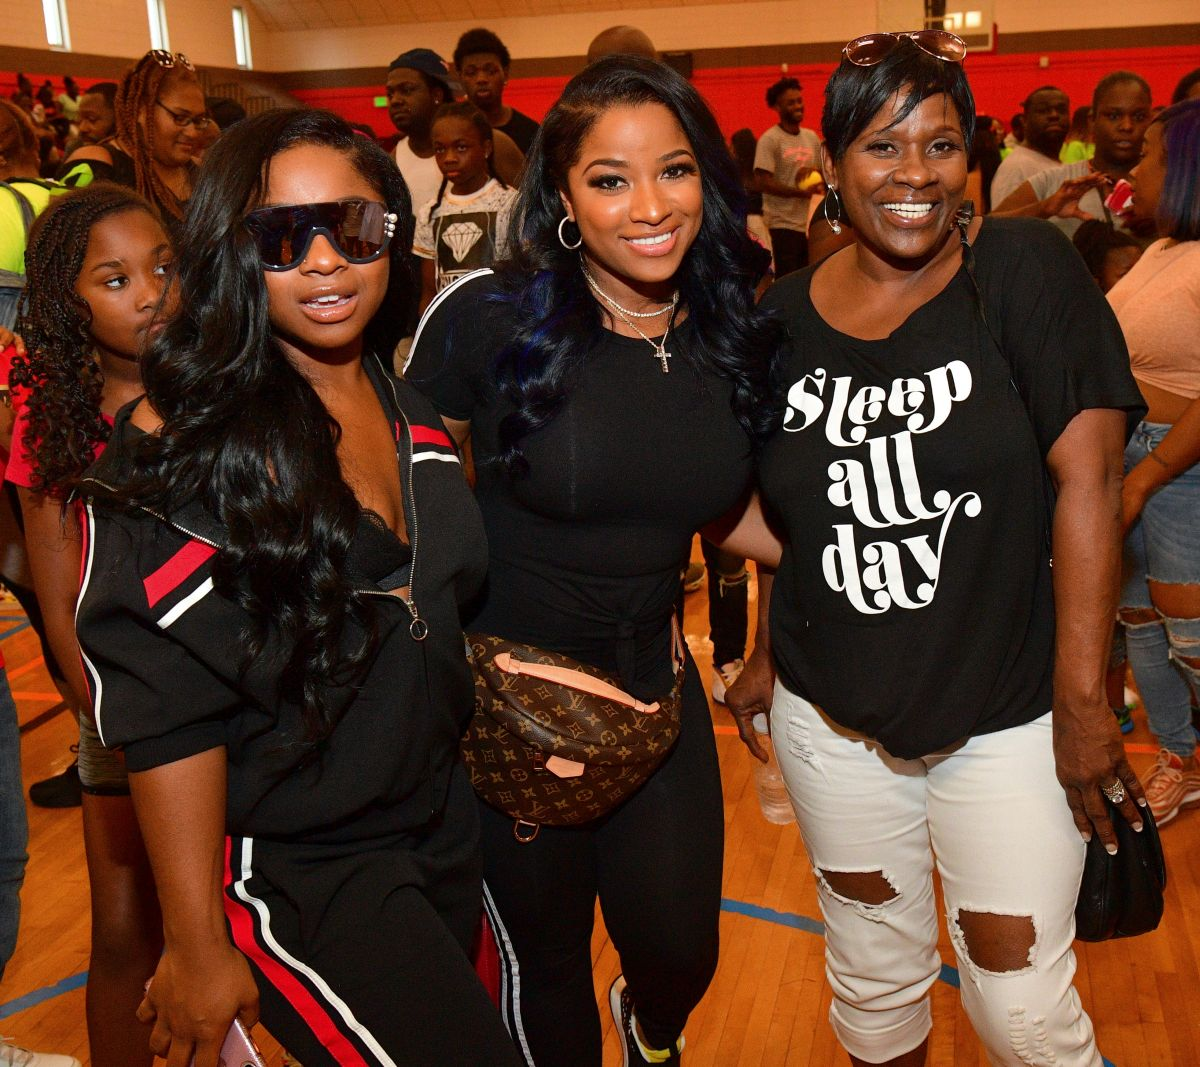 Toya Johnson Honors Her Mom - Check Out The Video She Chose To Share